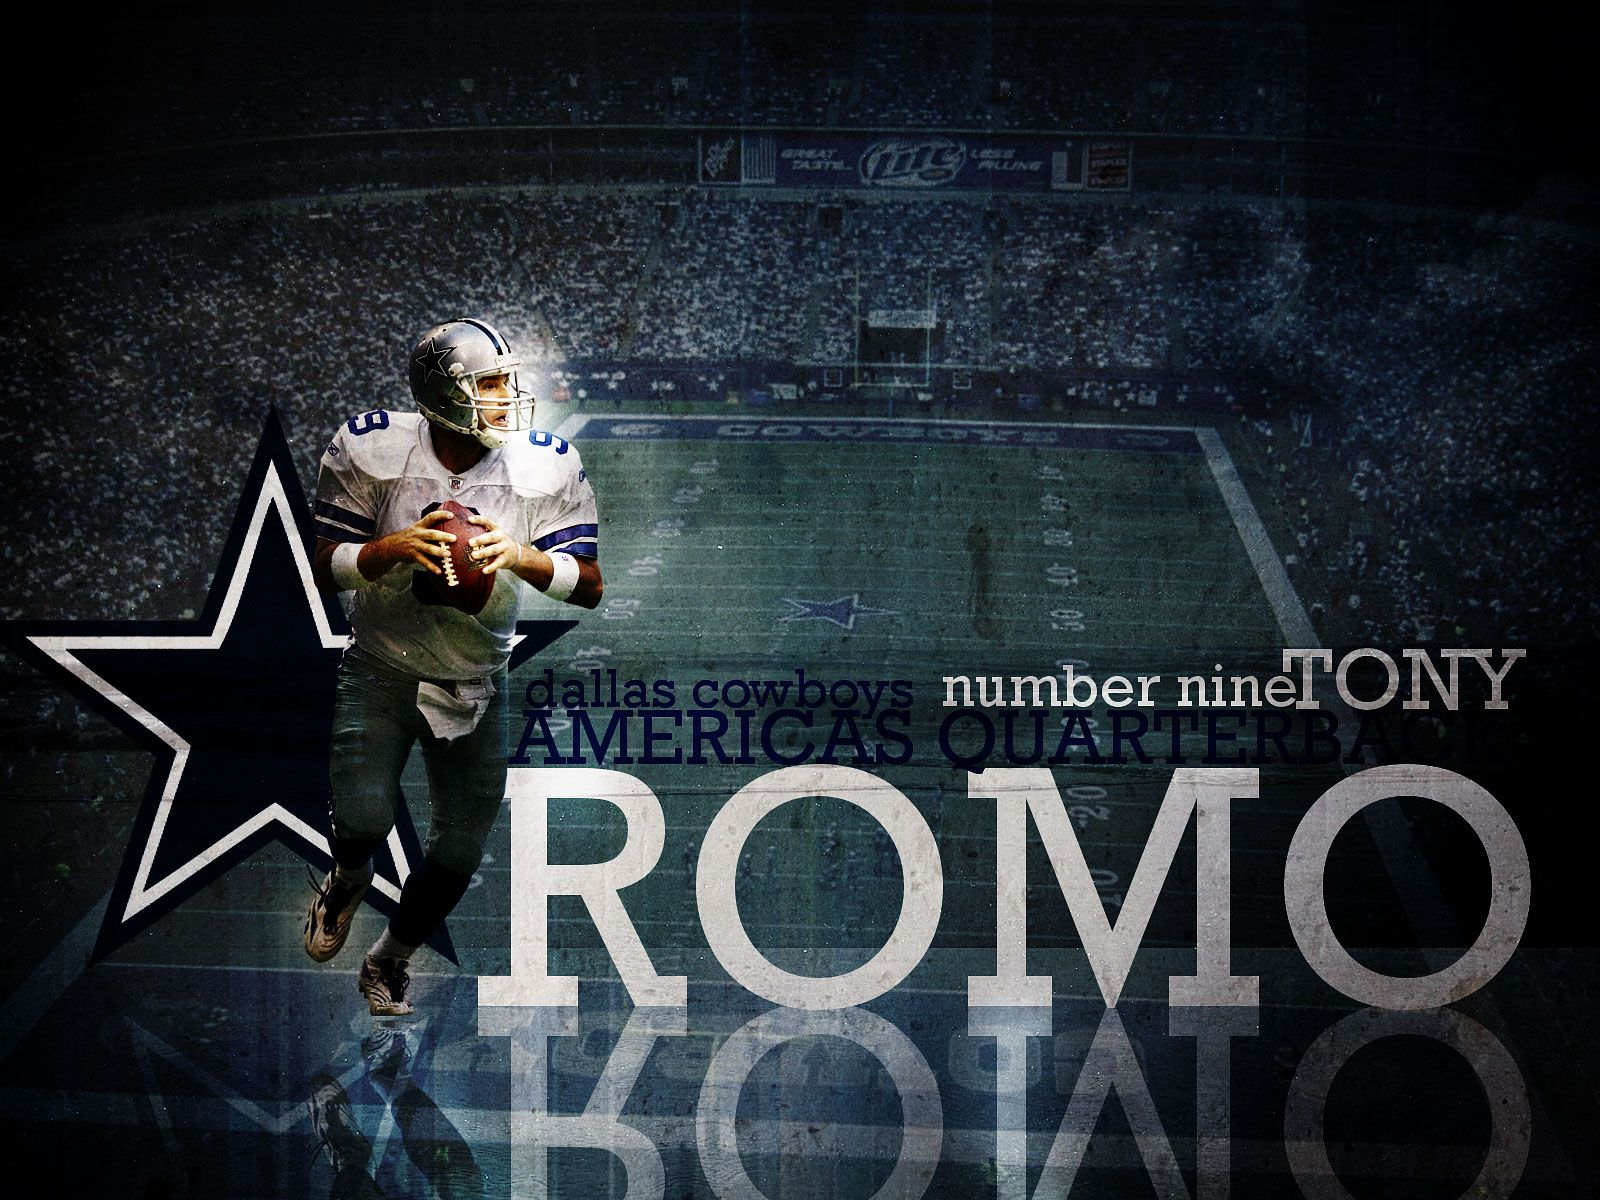 Beautiful Wallpaper Football Cowboys - 73d6562feee523c9d83d516d2f55d719  Graphic_436569 .jpg